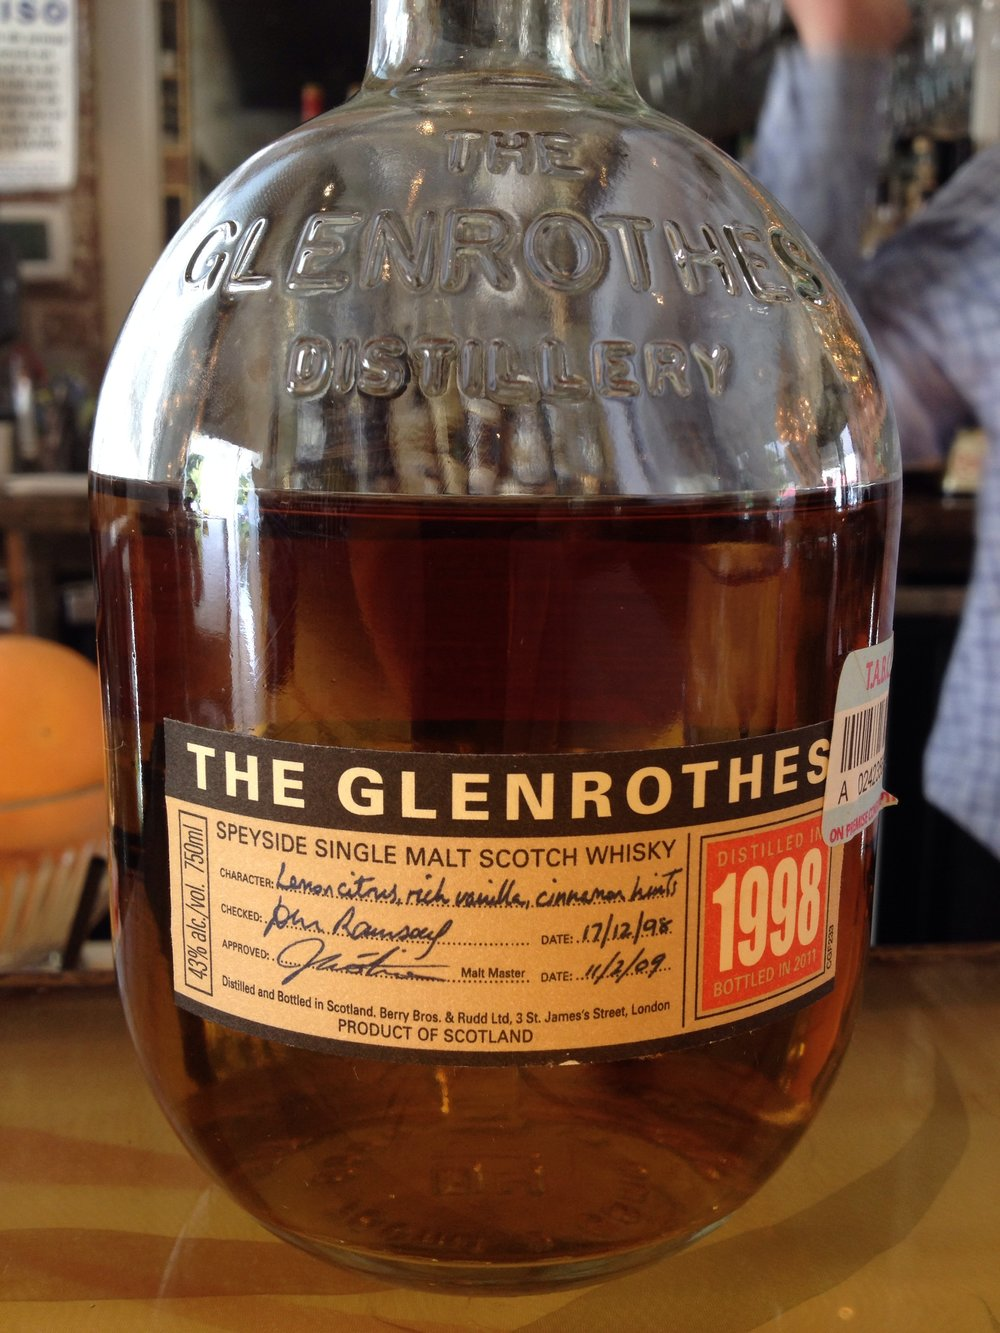 13 Year Old | 43% ABV - Distillery | Glenrothes